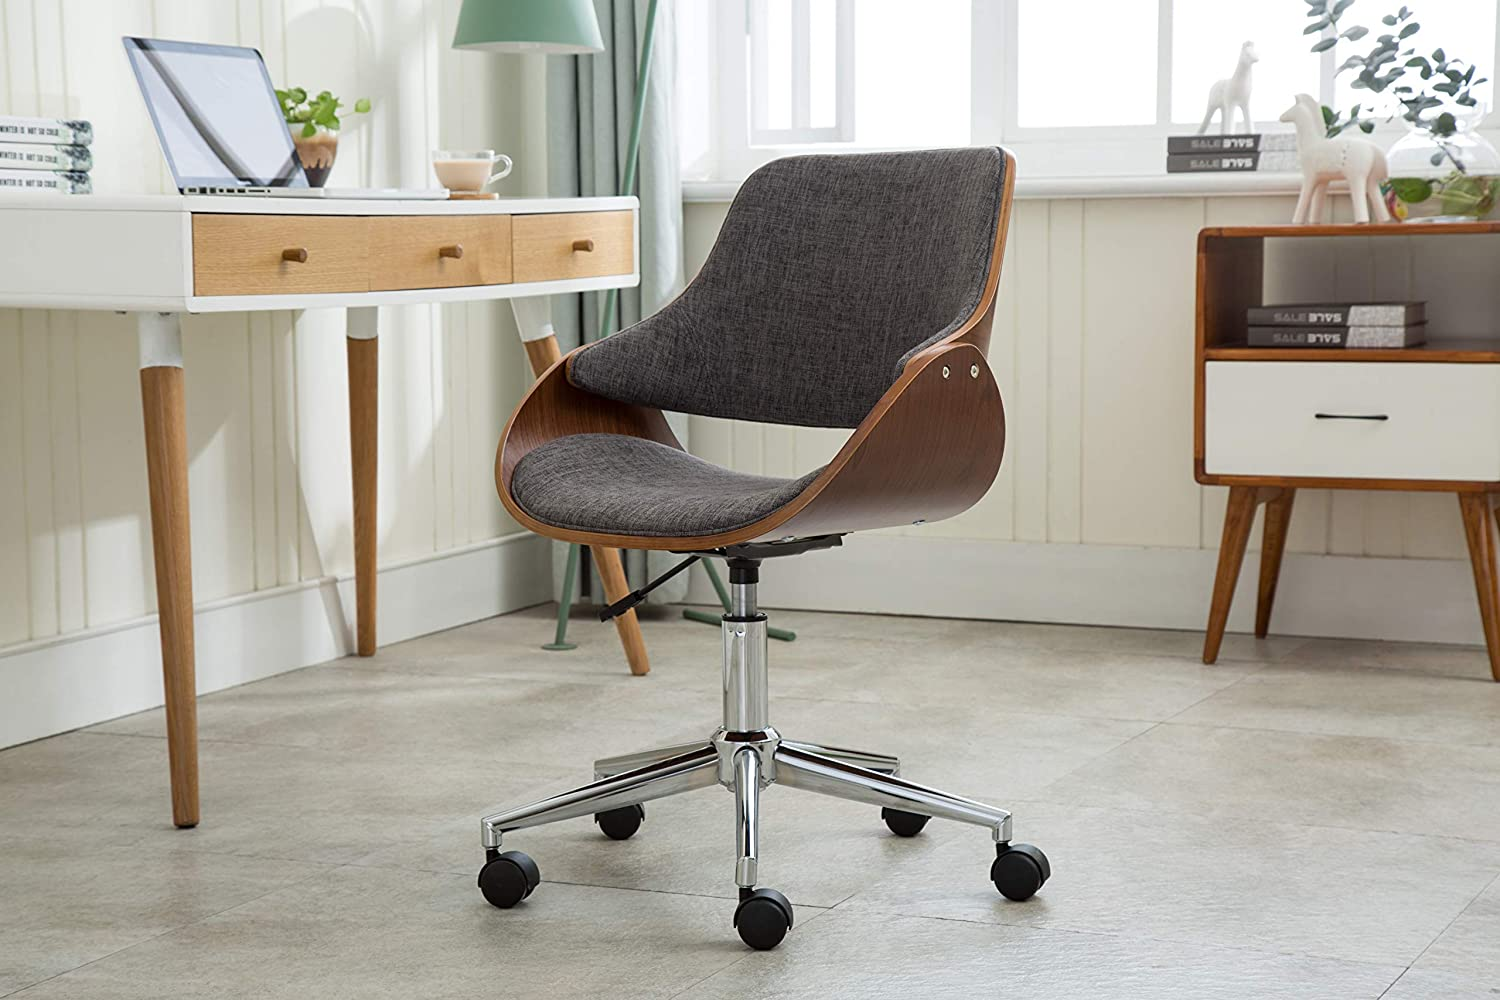 Amazon Com Porthos Home Tfc045b Gry Adjustable Height Mid Century Modern Office Desk Chair Fabric And Wood With Caster Wheels Easy Assembly One Size Grey Furniture Decor